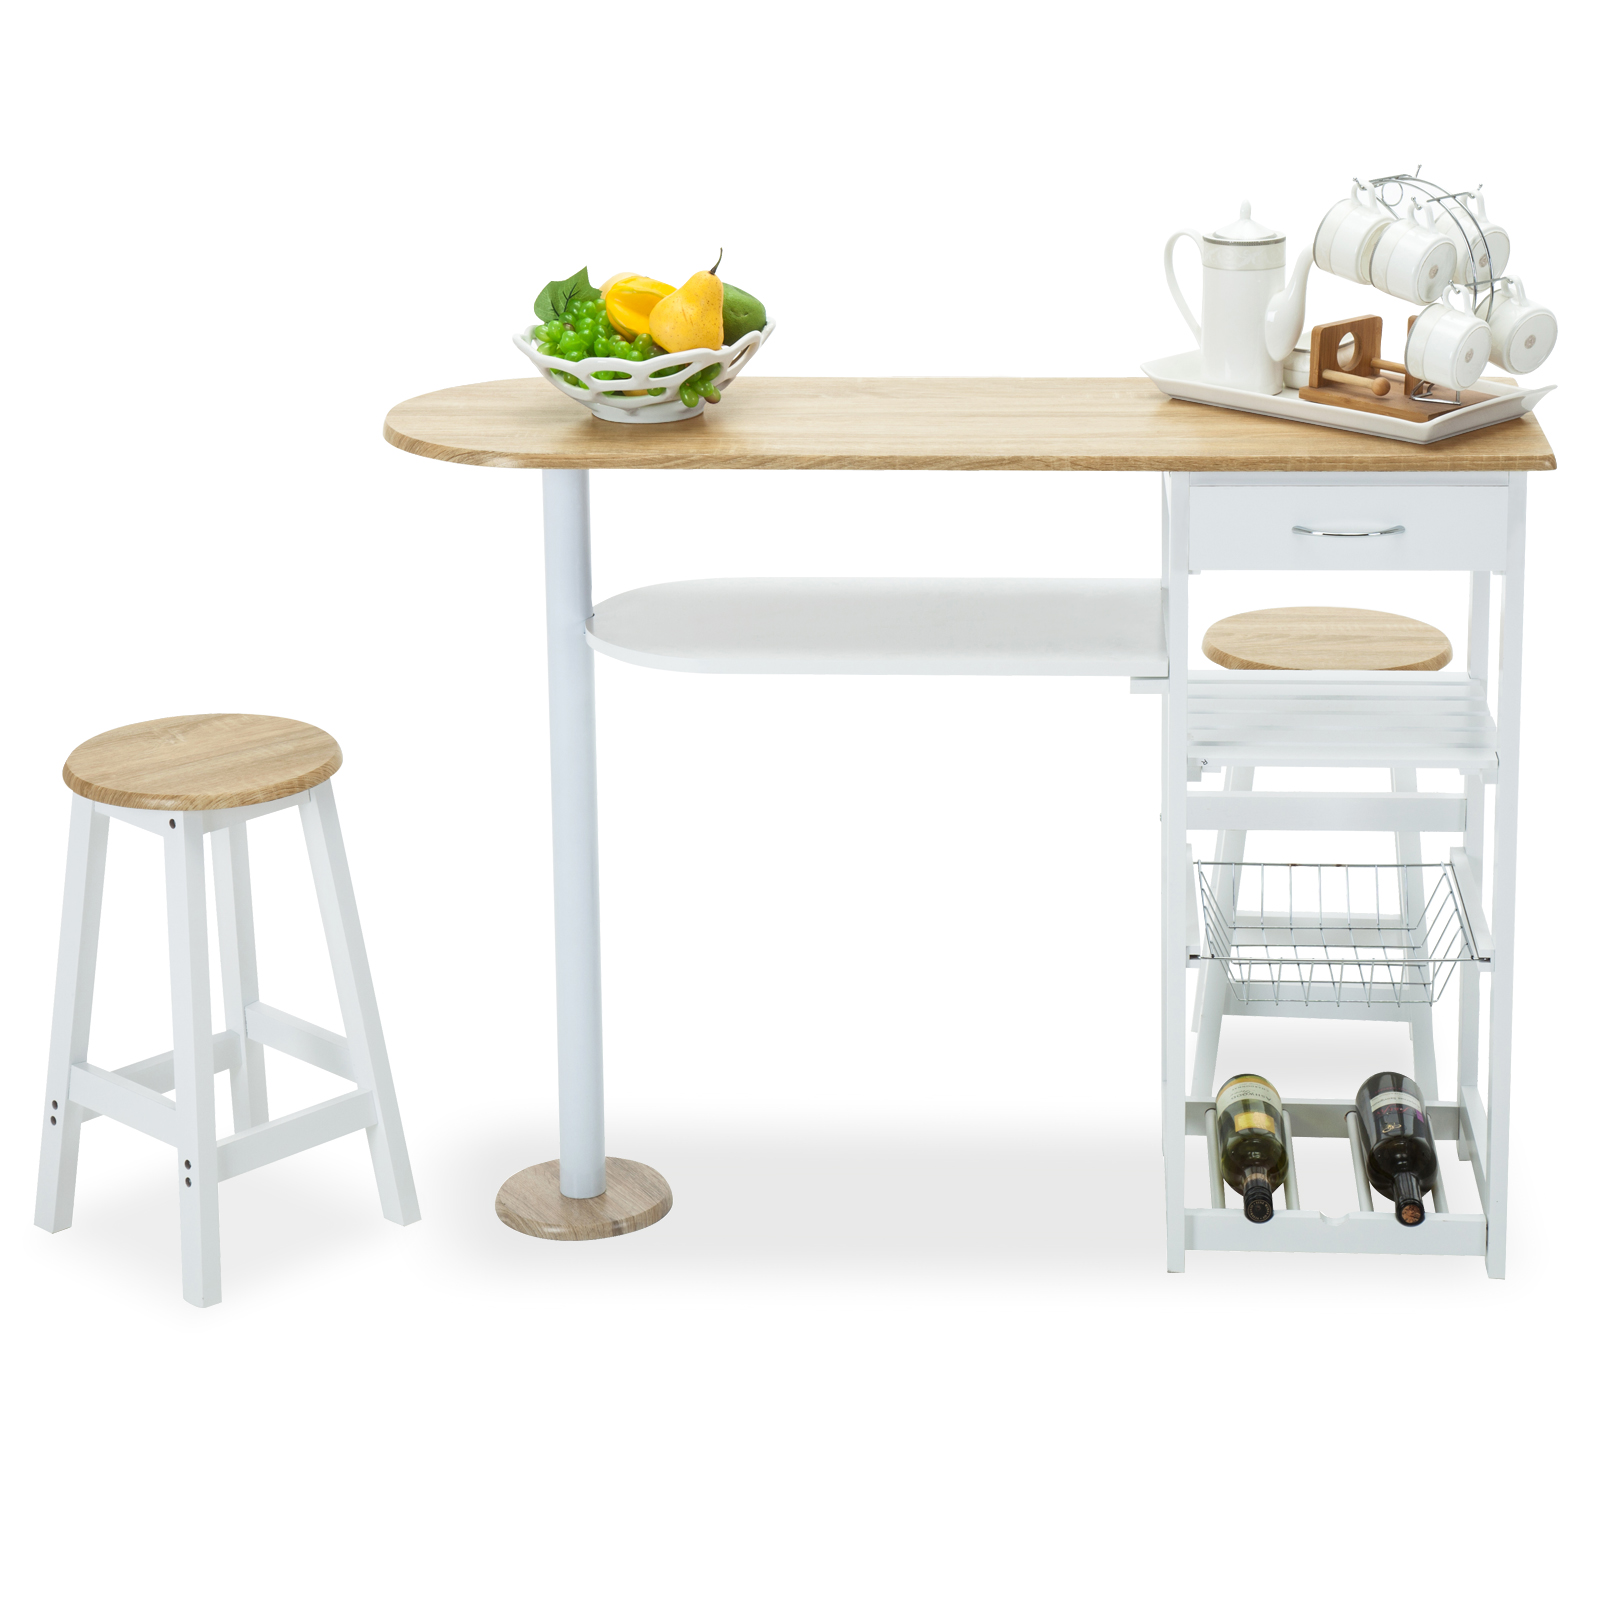 Oak white kitchen island cart trolley dining table storage for Kitchen table with storage